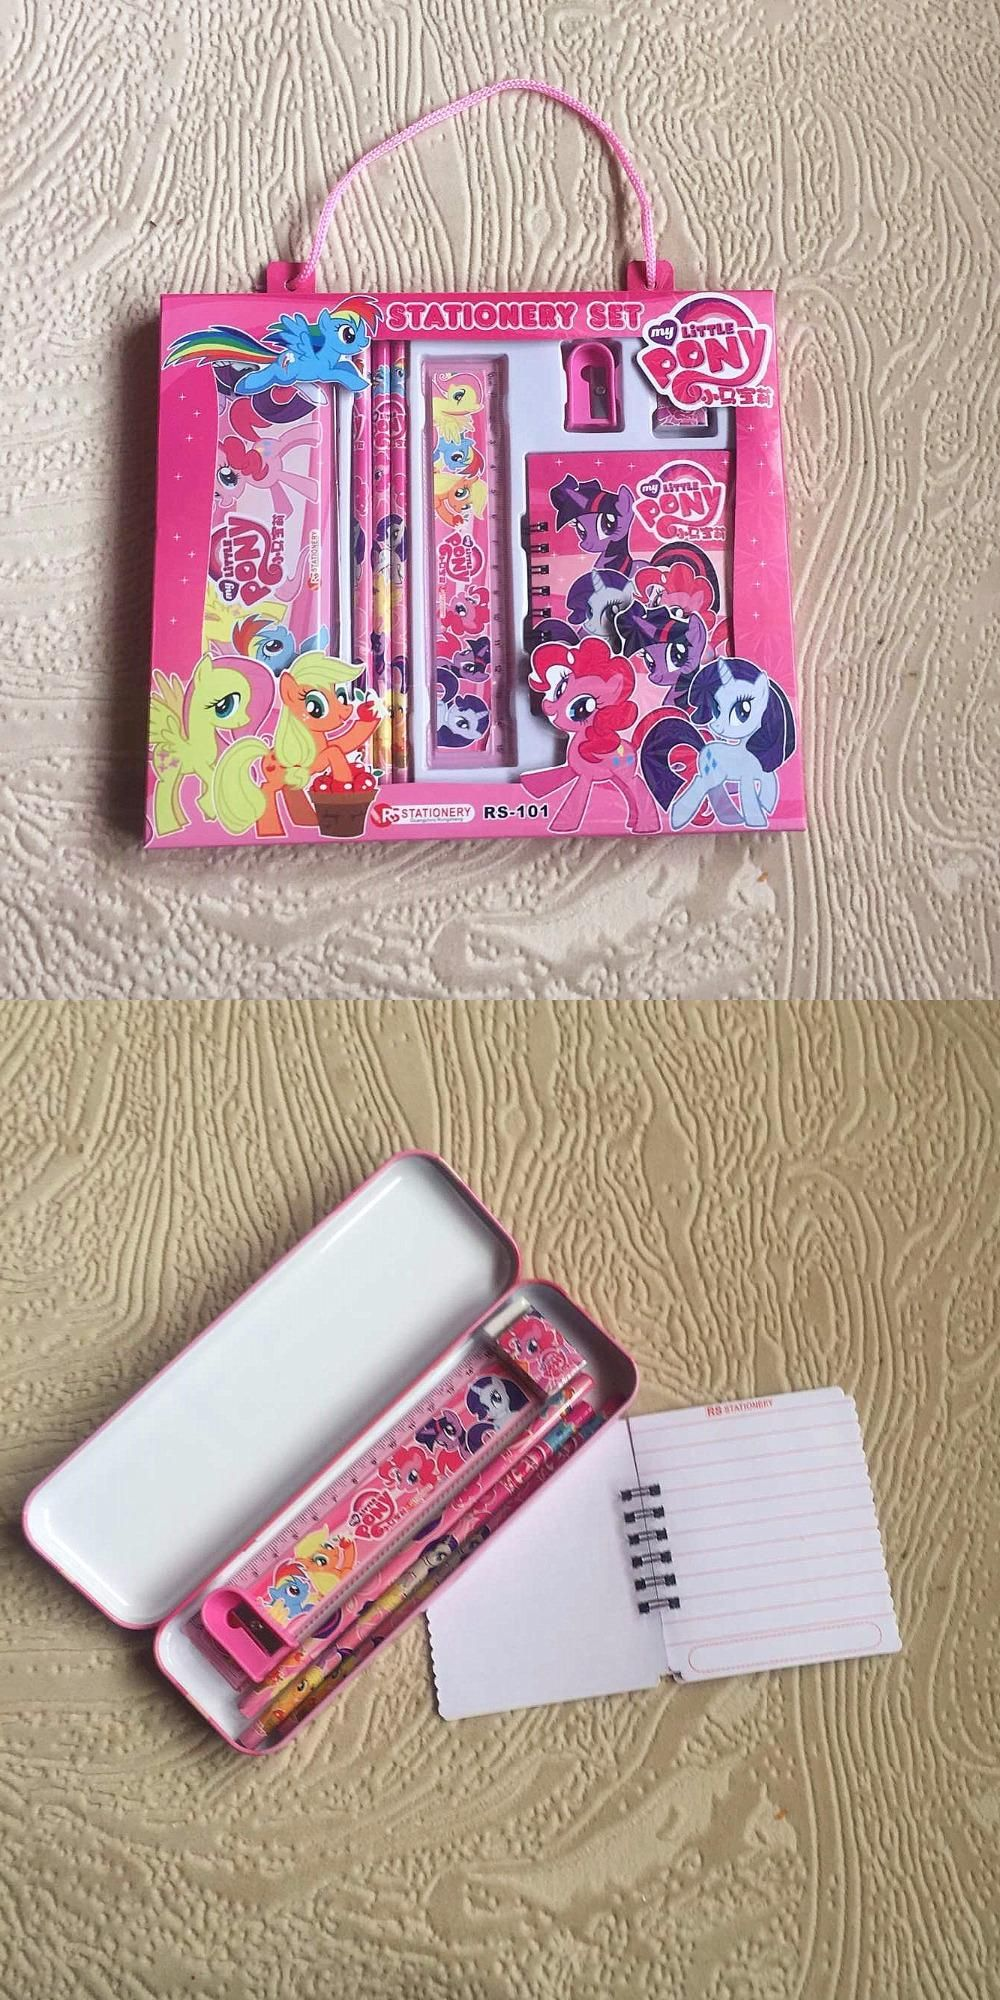 Visit To Buy Cute Cartoon My Little Pony Theme School Kids Stationery Sets Pencil Case For Children Ruler Kids Stationery Set Kids Stationery Stationery Set